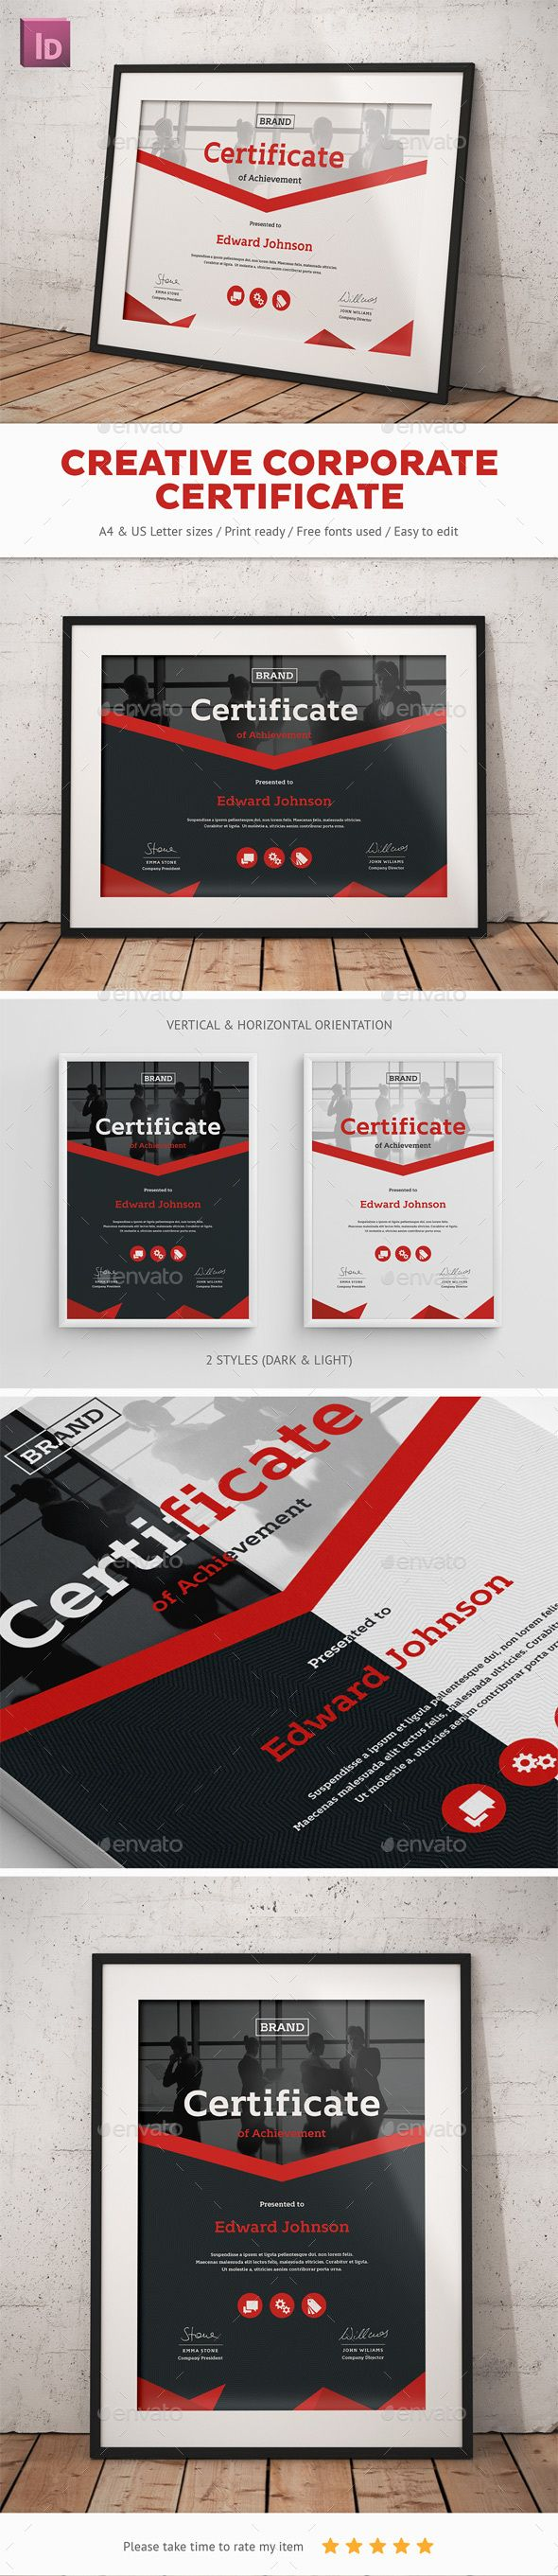 Creative Corporate Certificate Template InDesign INDD. Download here: http://graphicriver.net/item/creative-corporate-certificate/14878026?ref=ksioks